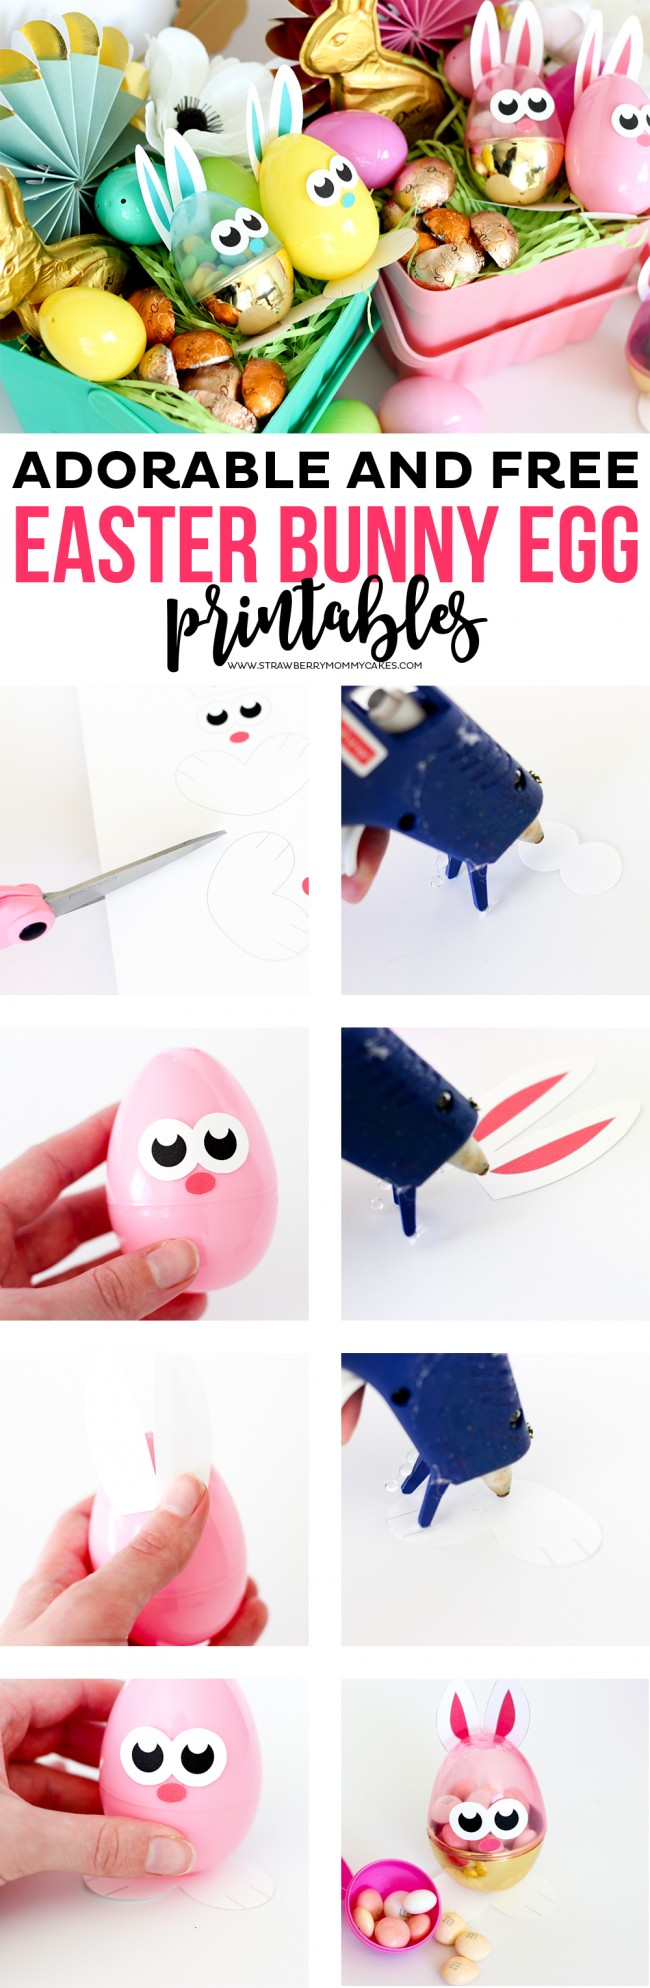 how-to-create-adorable-easter-bunny-egg-printables-1